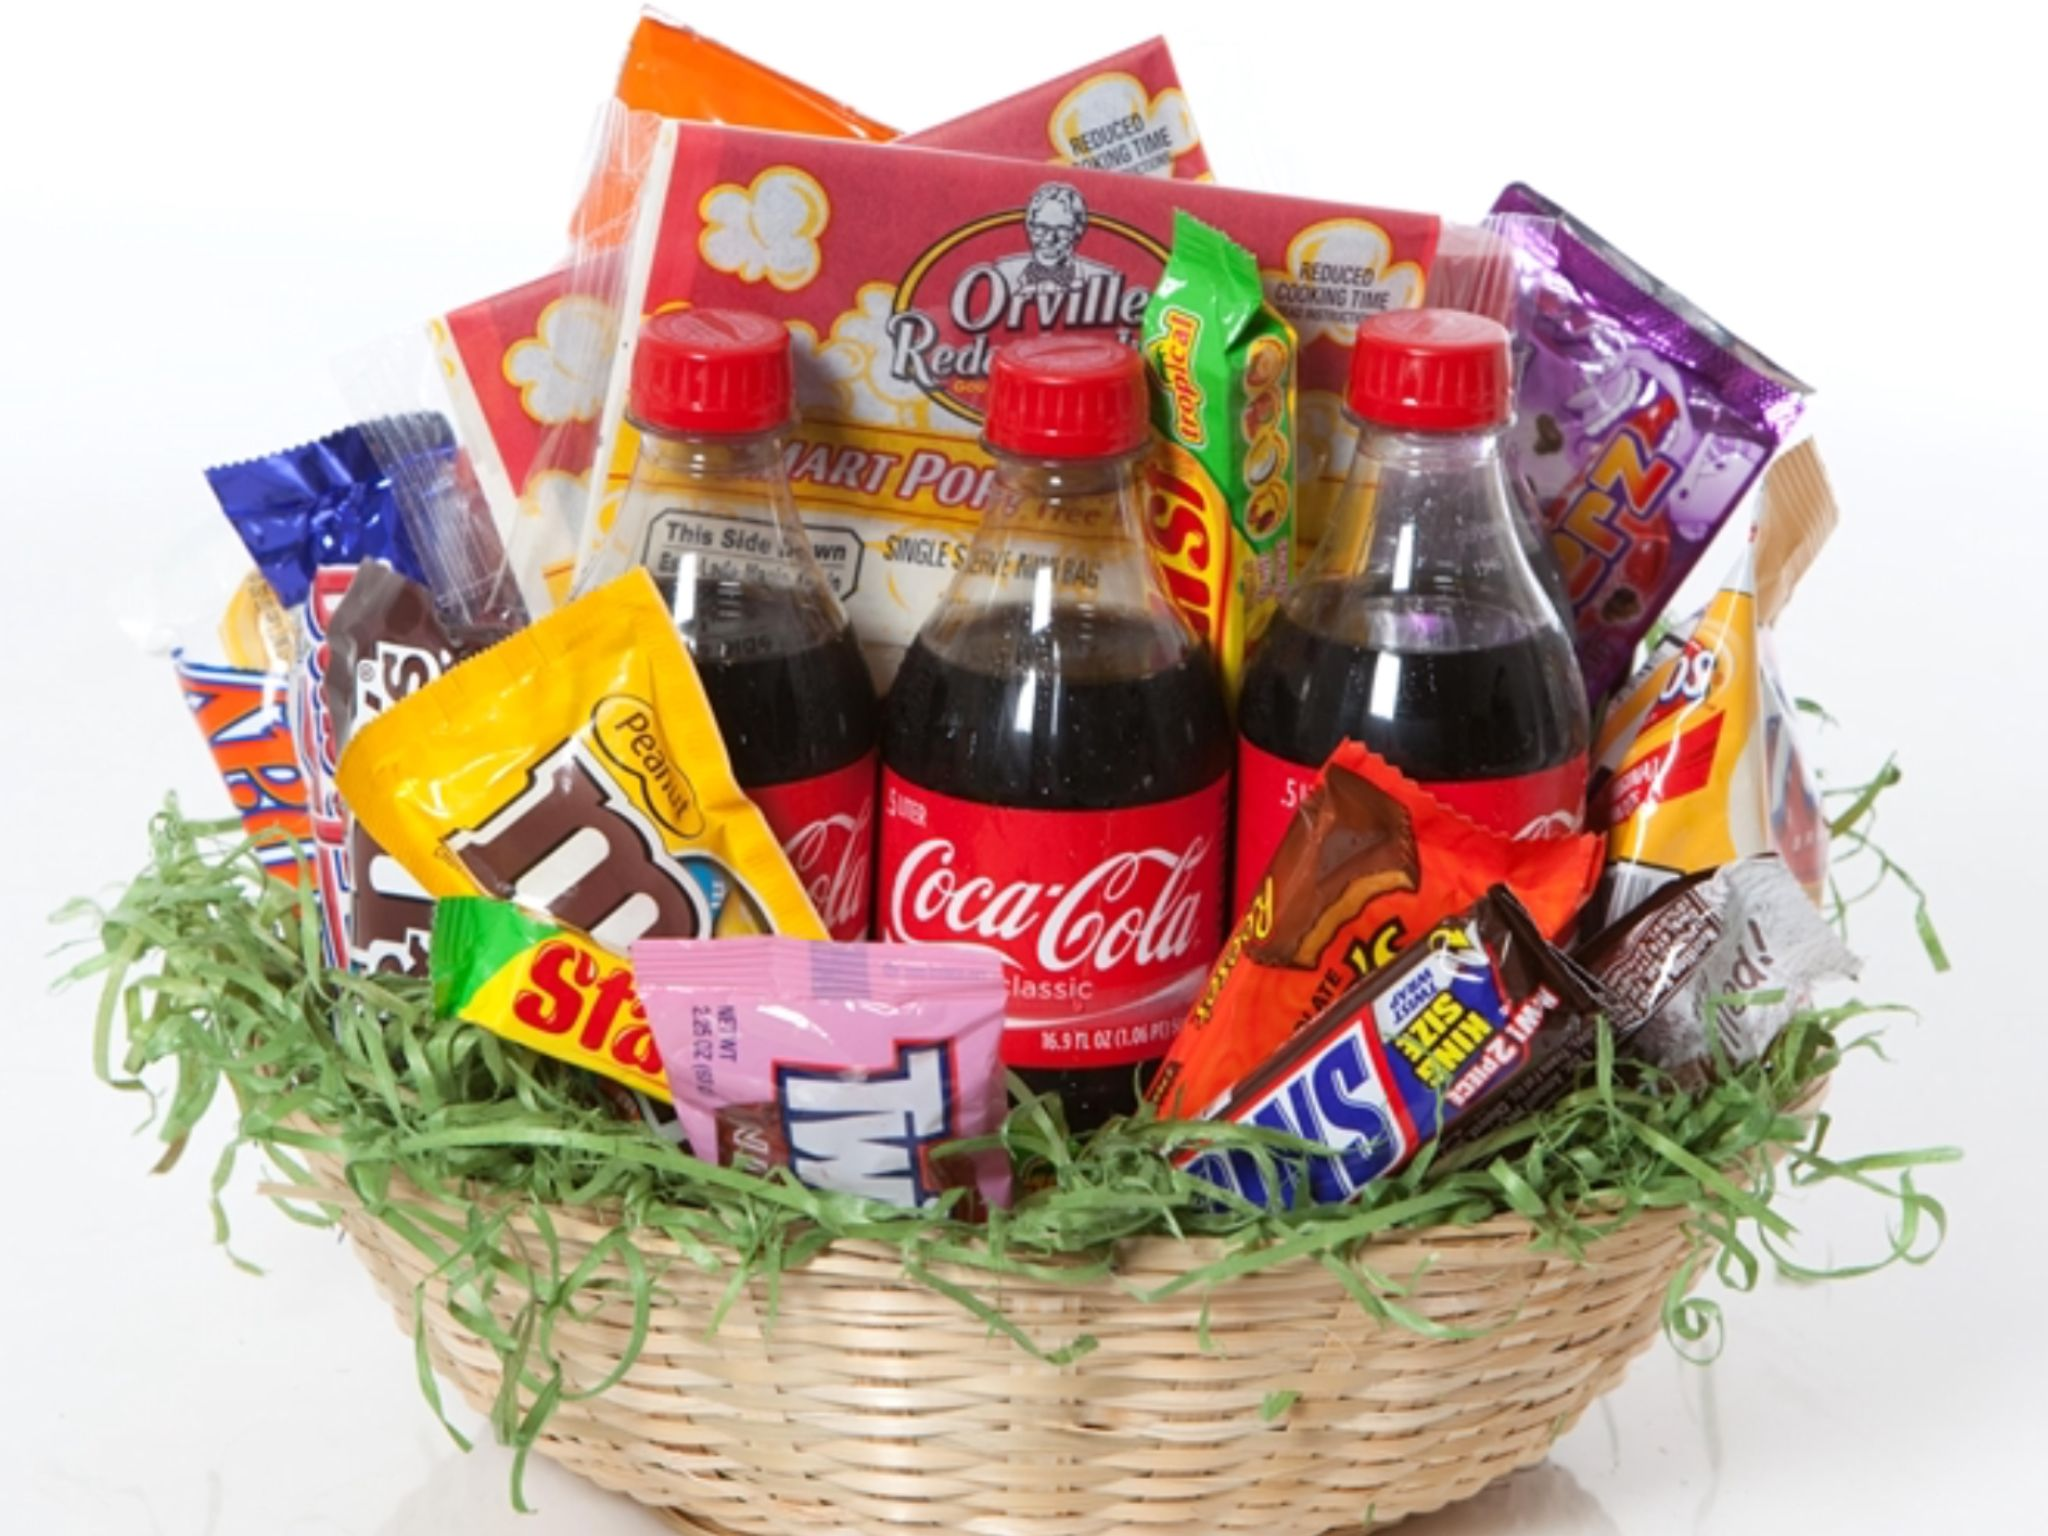 Delicious treats for any one birthday gifts pinterest basket this is the perfect gift for a college student or wildcat lover this junk food basket consists of soda popcorn chips and candy negle Choice Image